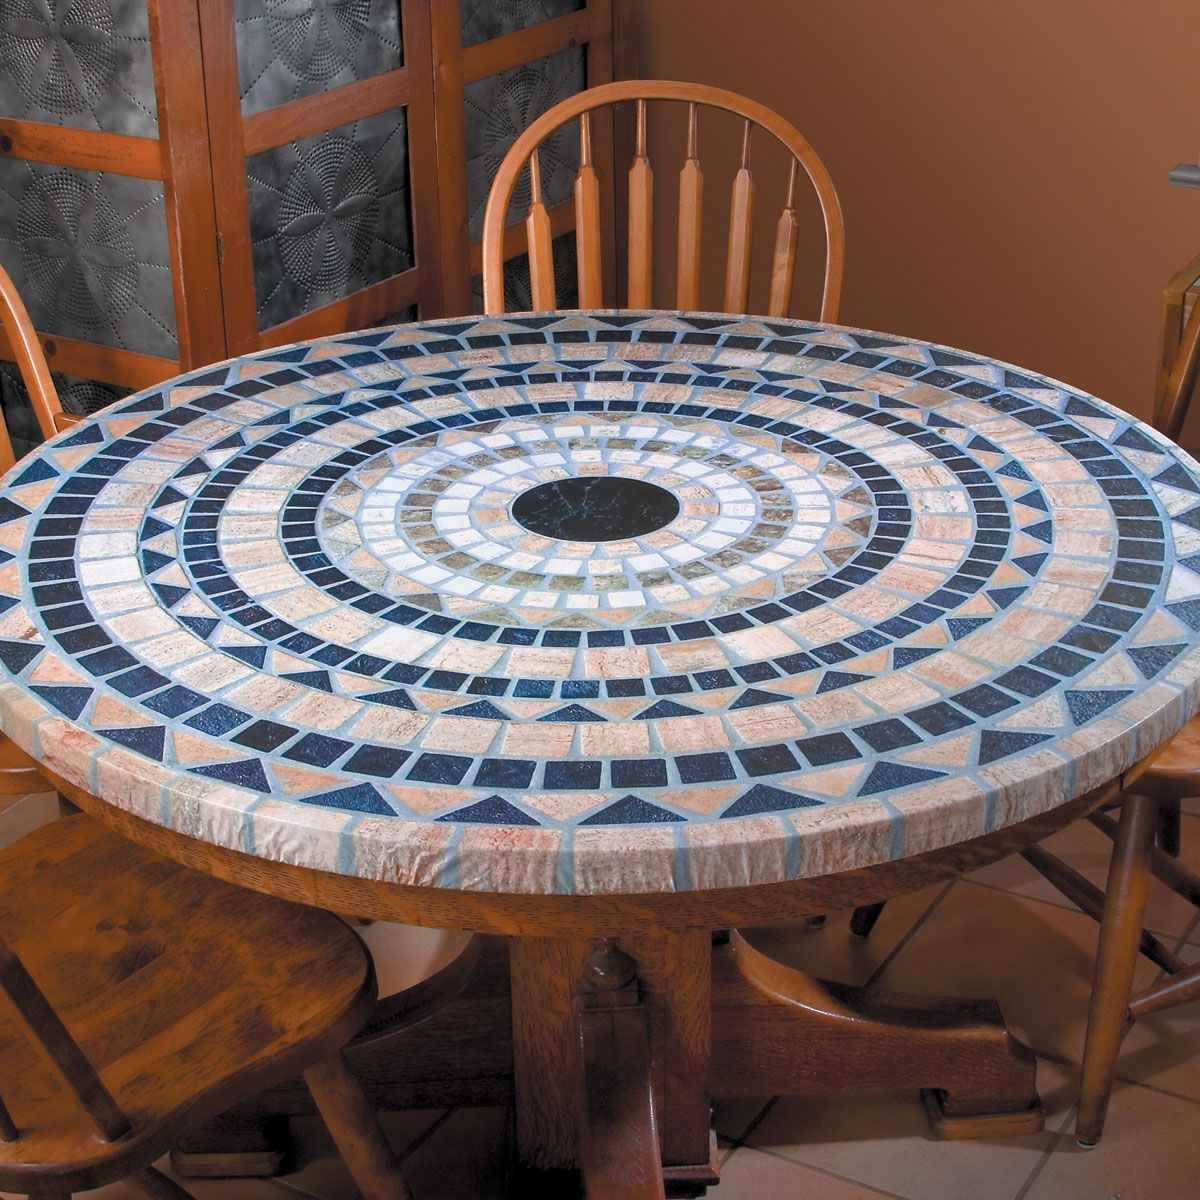 Mediterranean Stone-Look Table Covers - Recently bought ...